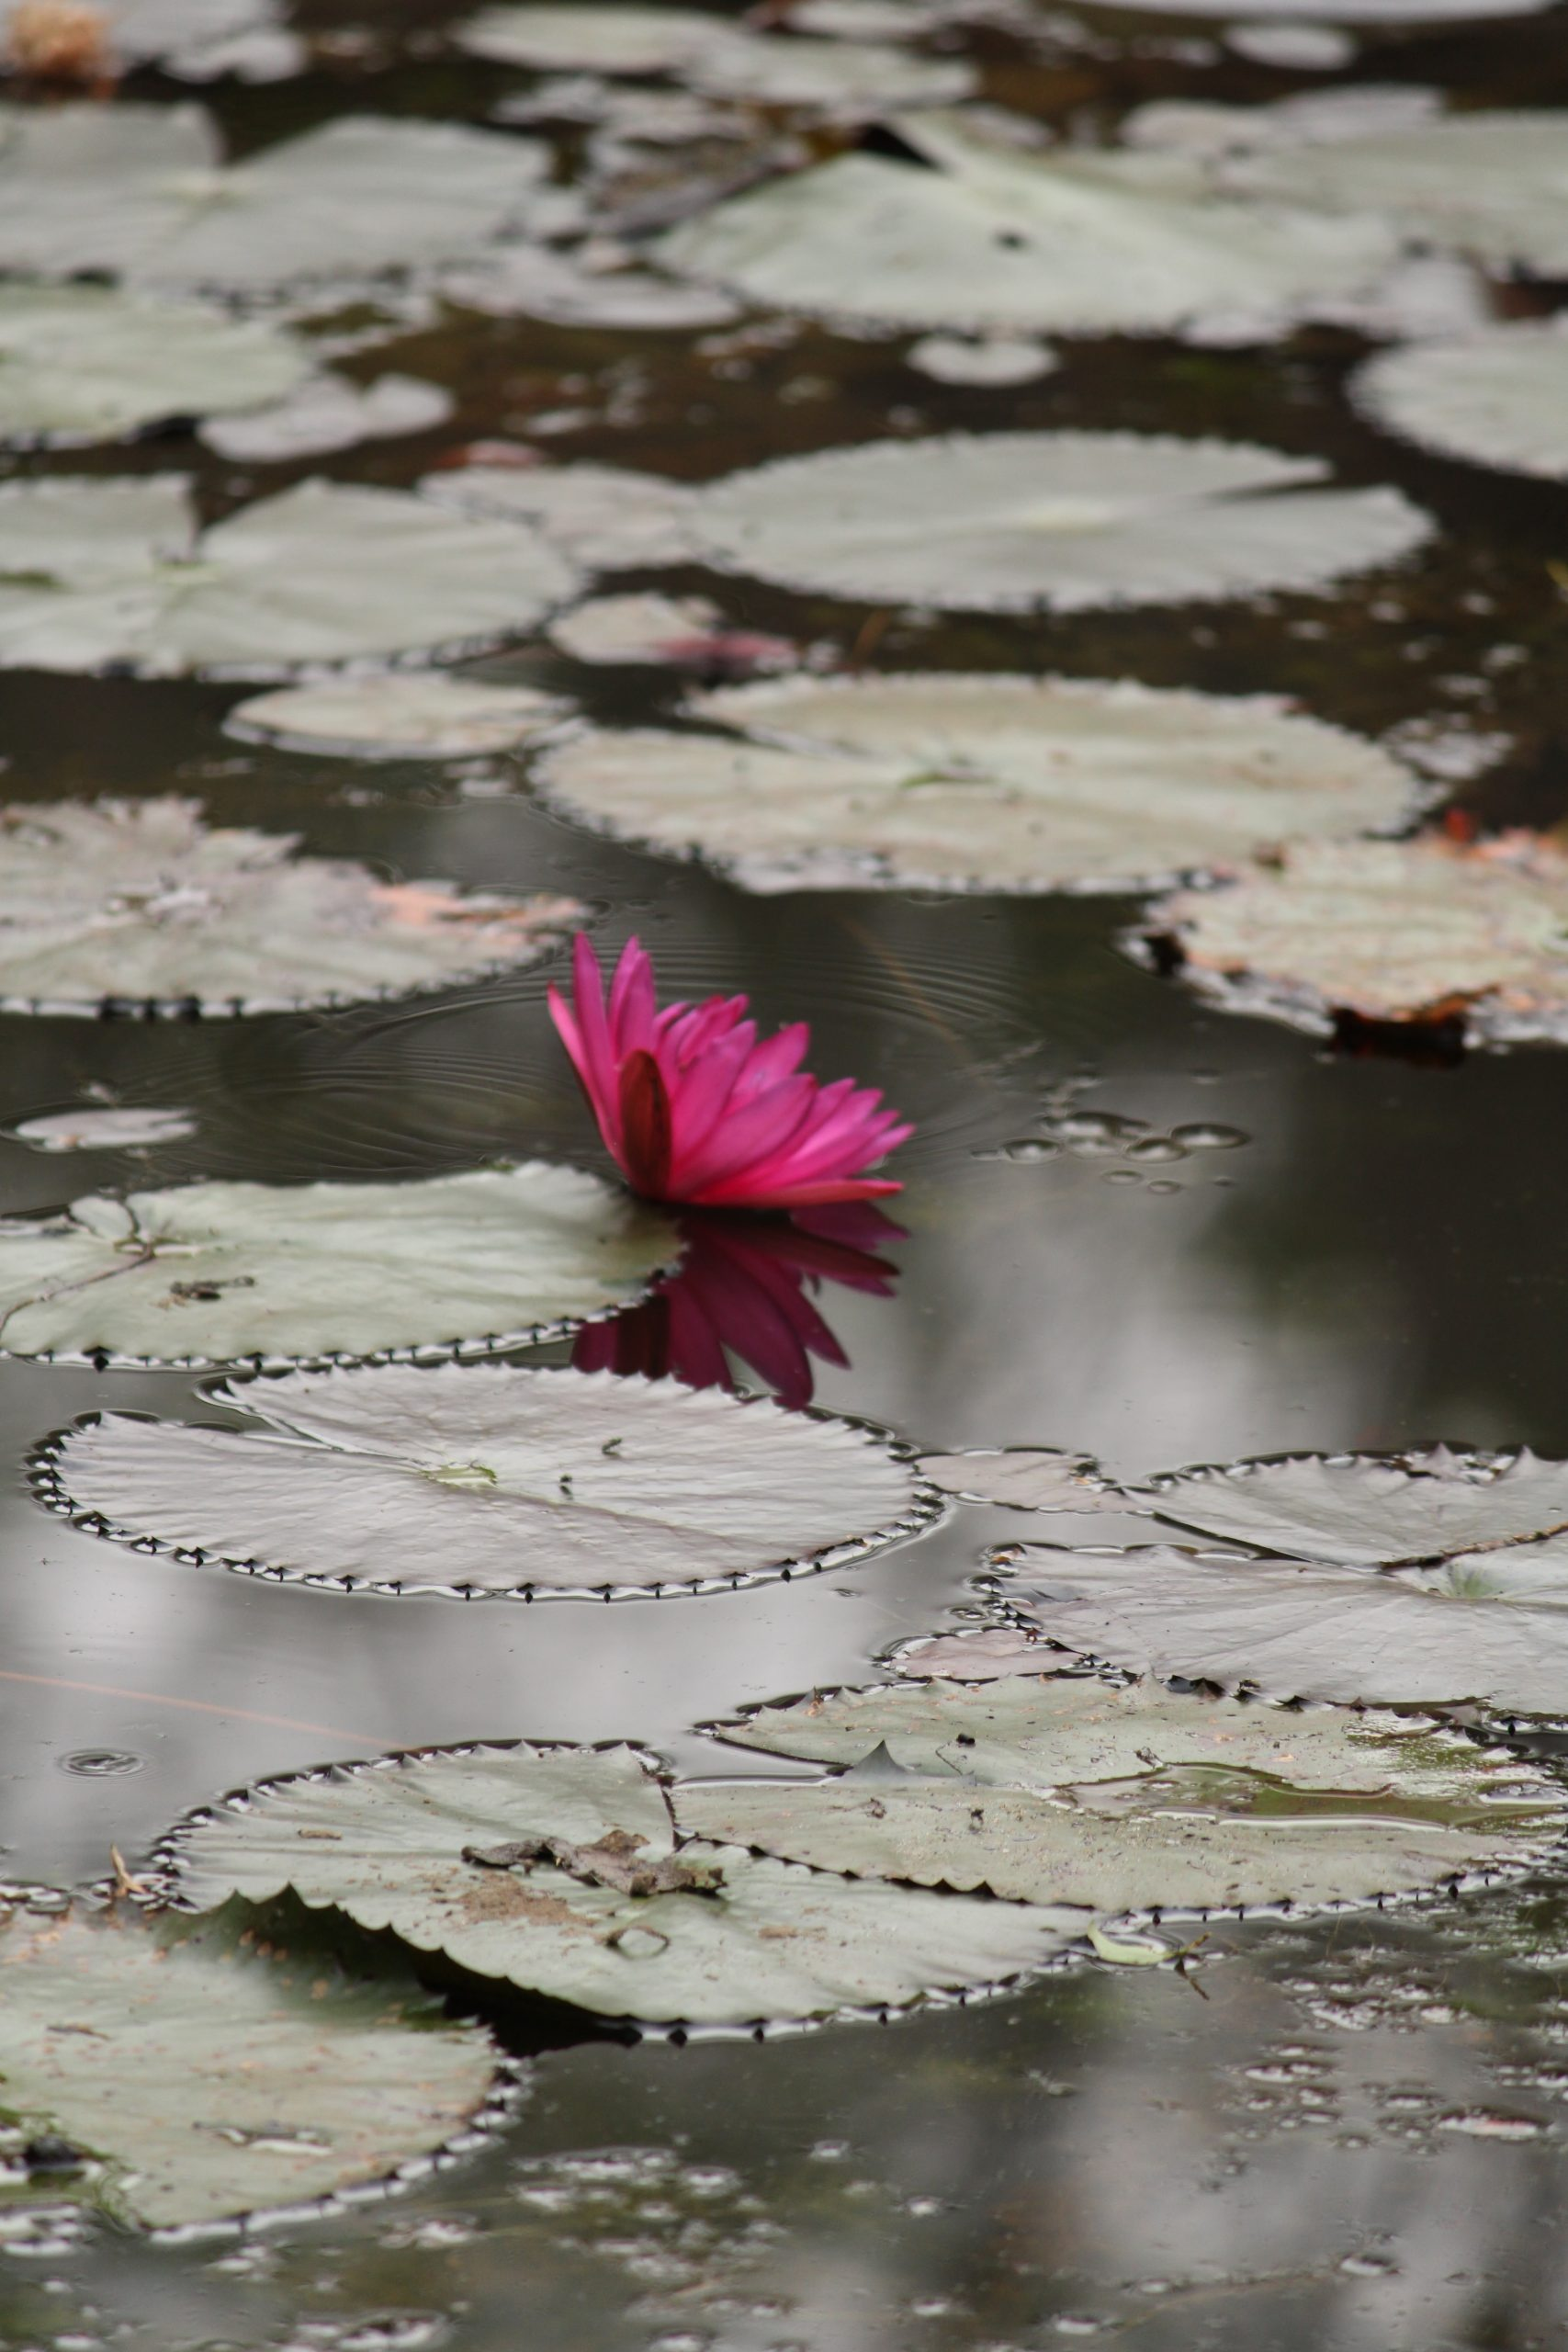 Lilly flower in the pond.